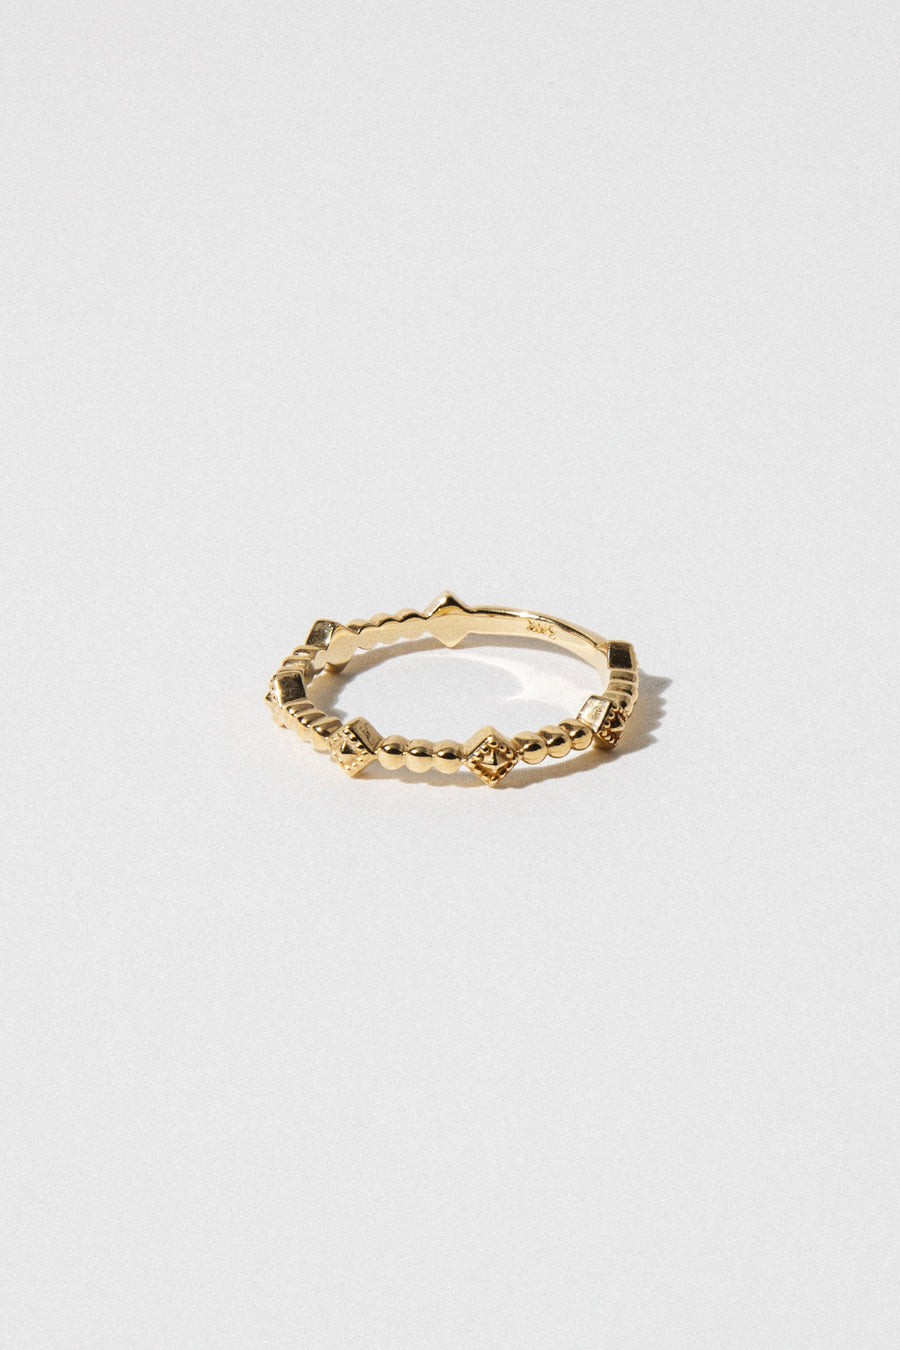 Stuller Jewelry Gold / US 7 Titian Ring